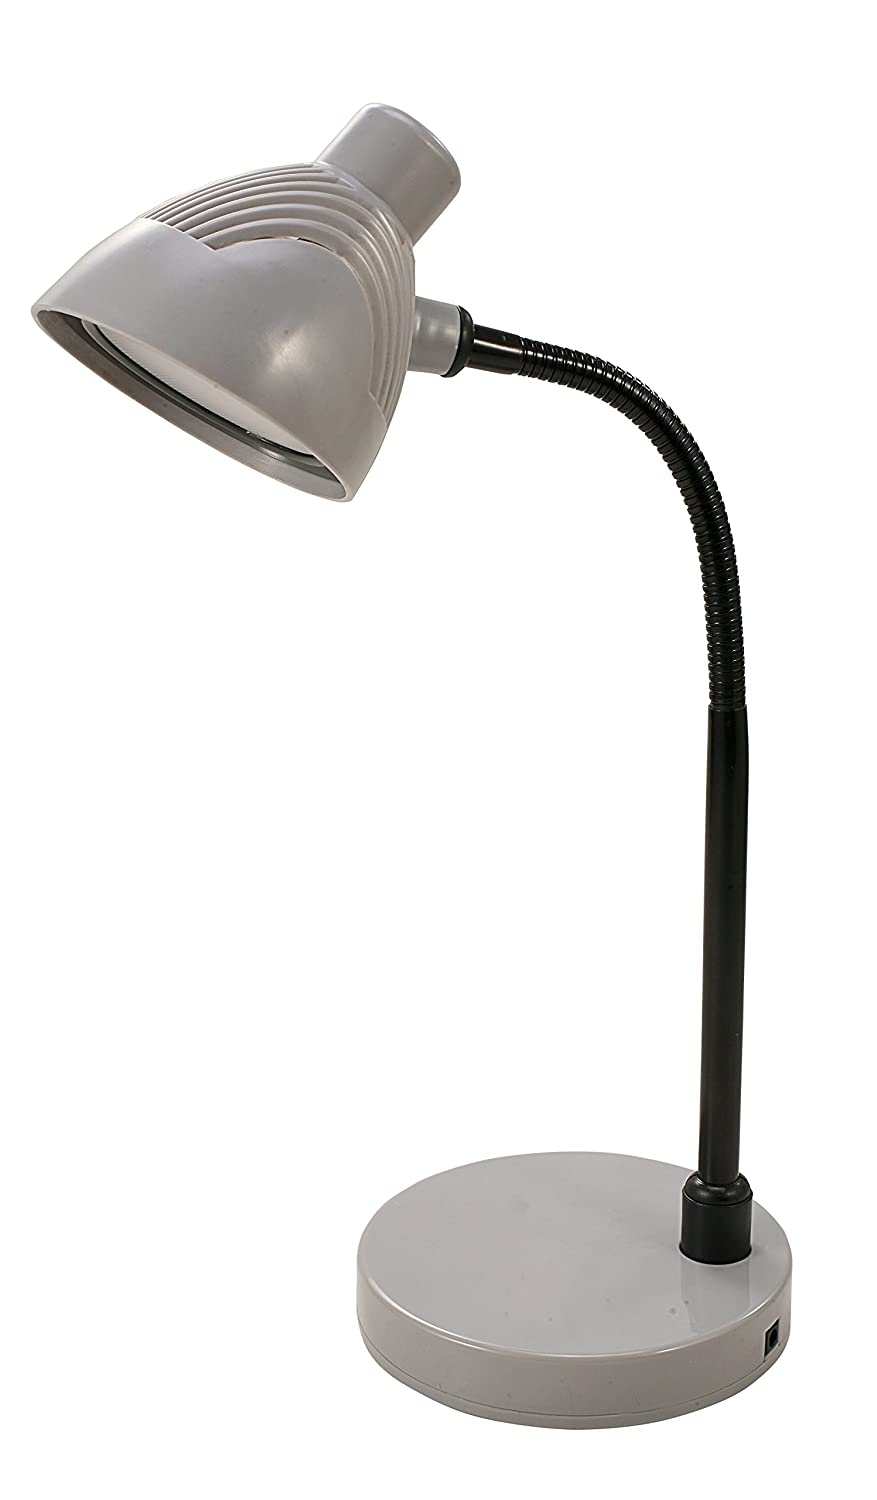 Amazoncom VLIGHT LED EnergyEfficient Desk Lamp with Adjustable